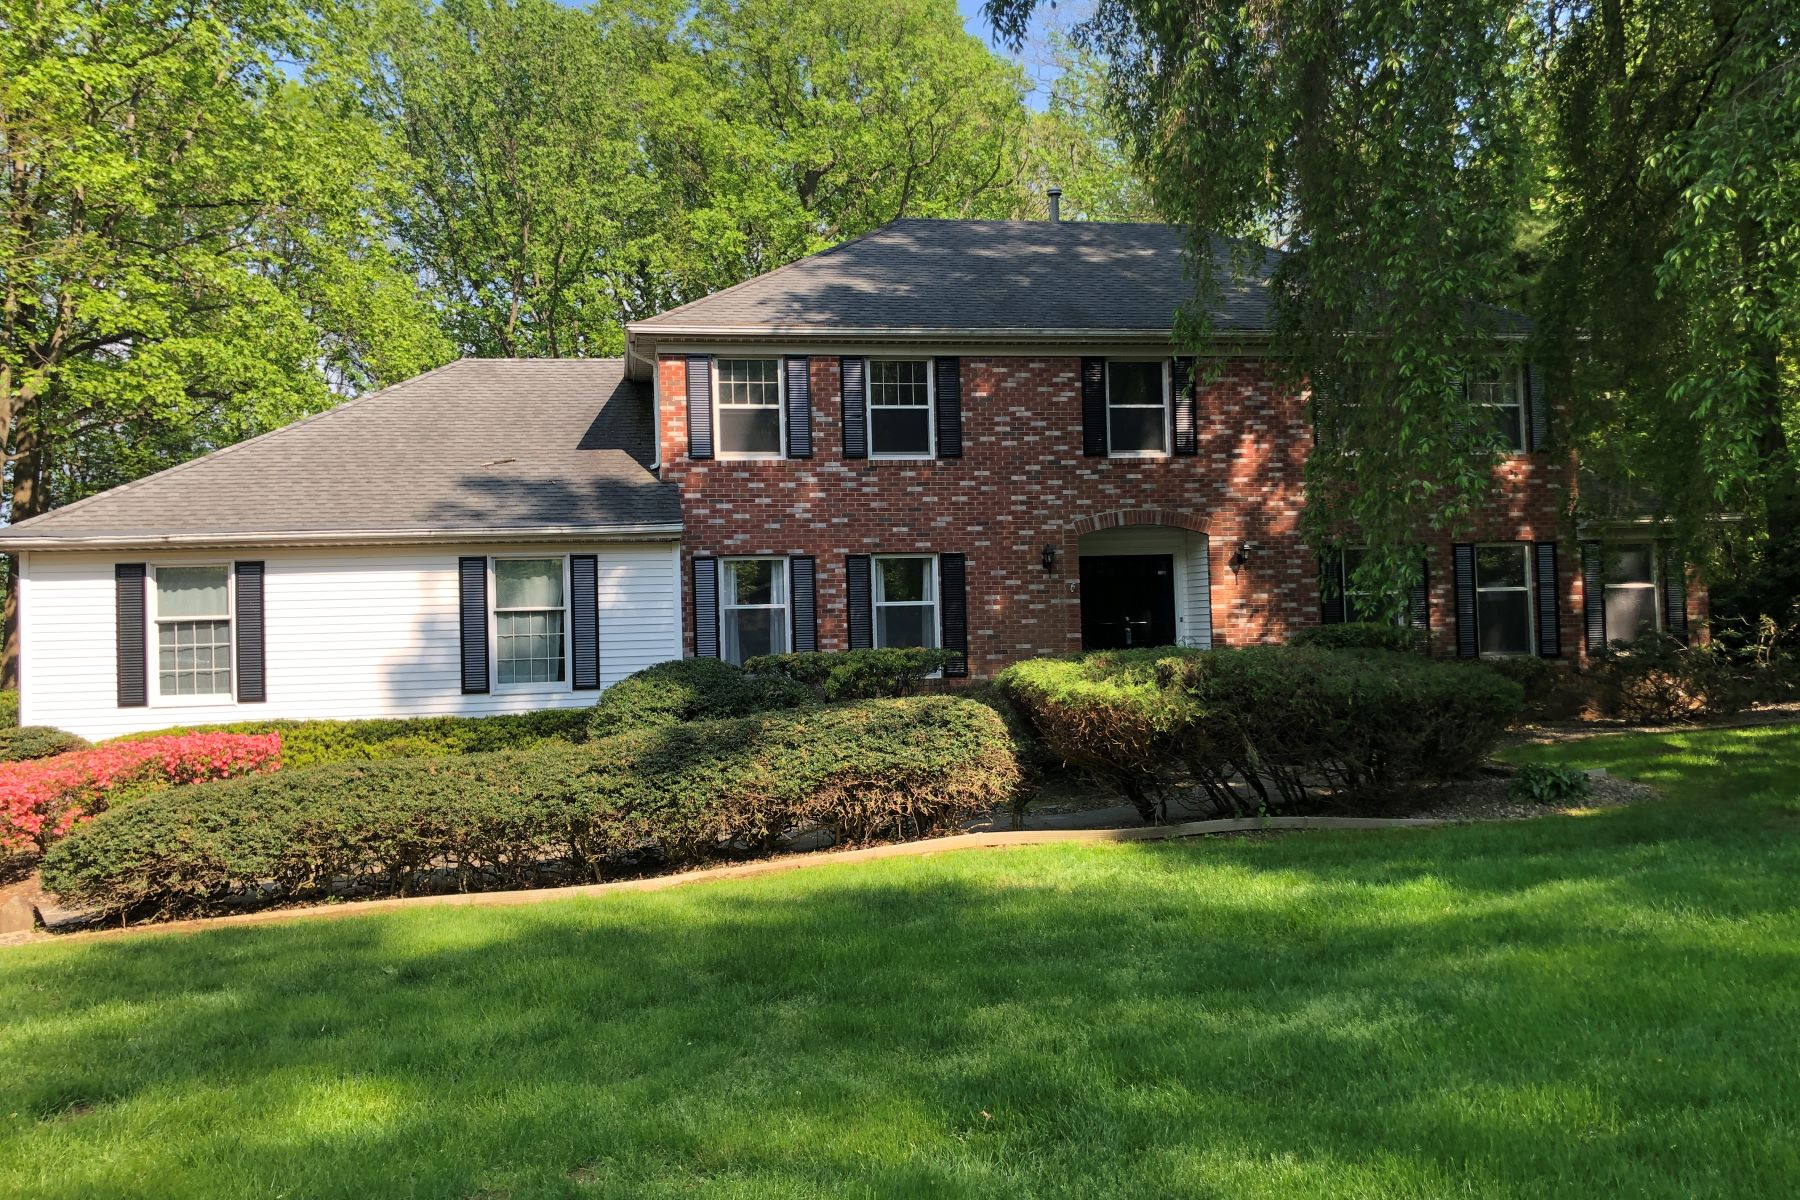 Single Family Home for Sale at Picturesque Holmdel 2 Northview Terr, Holmdel, New Jersey 07733 United States